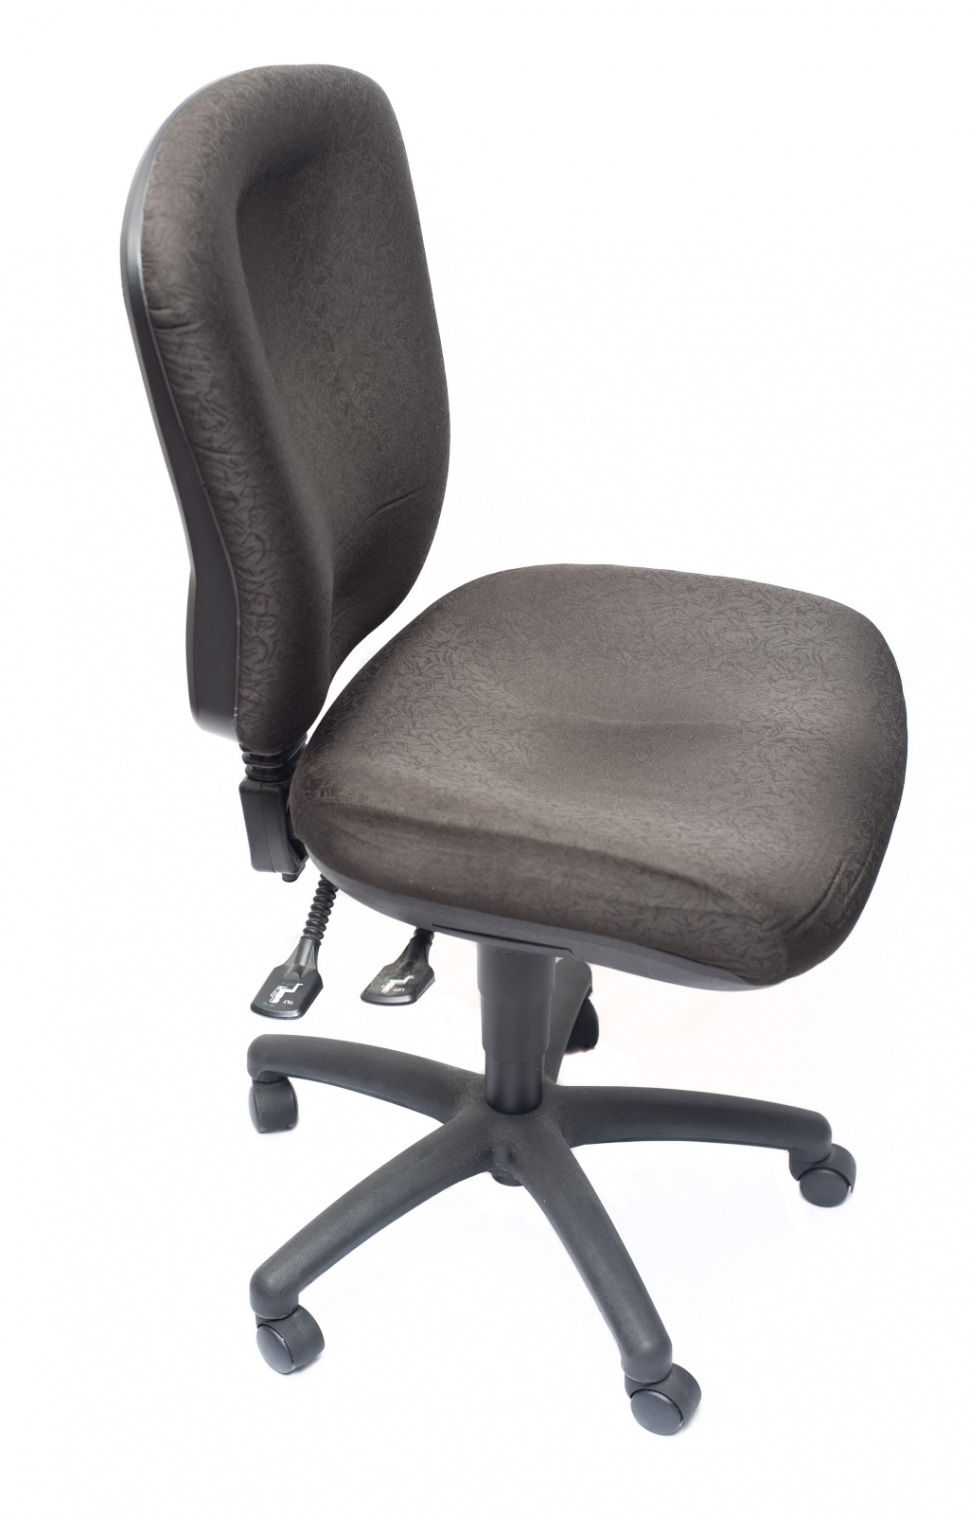 Wheeled office chair ashley furniture home office check more at http www